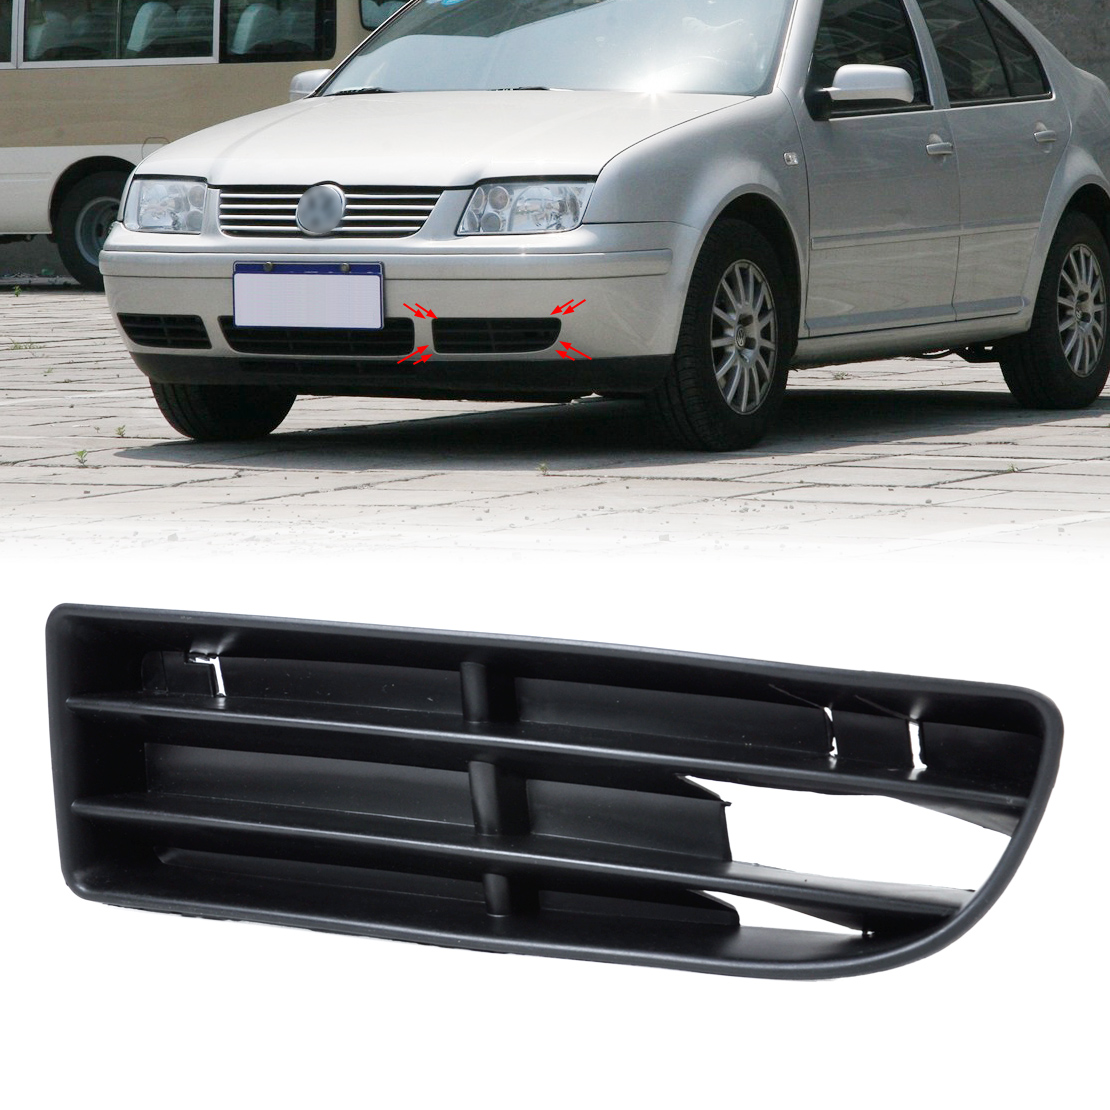 DWCX 1J5853665B Front Left Side Bumper Lower Grill Vent for VW Jetta Bora MK4 1999  2000 2001 2002 2003 2004 jeazea glove box light storage compartment lamp 1j0947301 1j0 947 301 for vw jetta golf bora octavia 2000 2001 2002 2003 2004